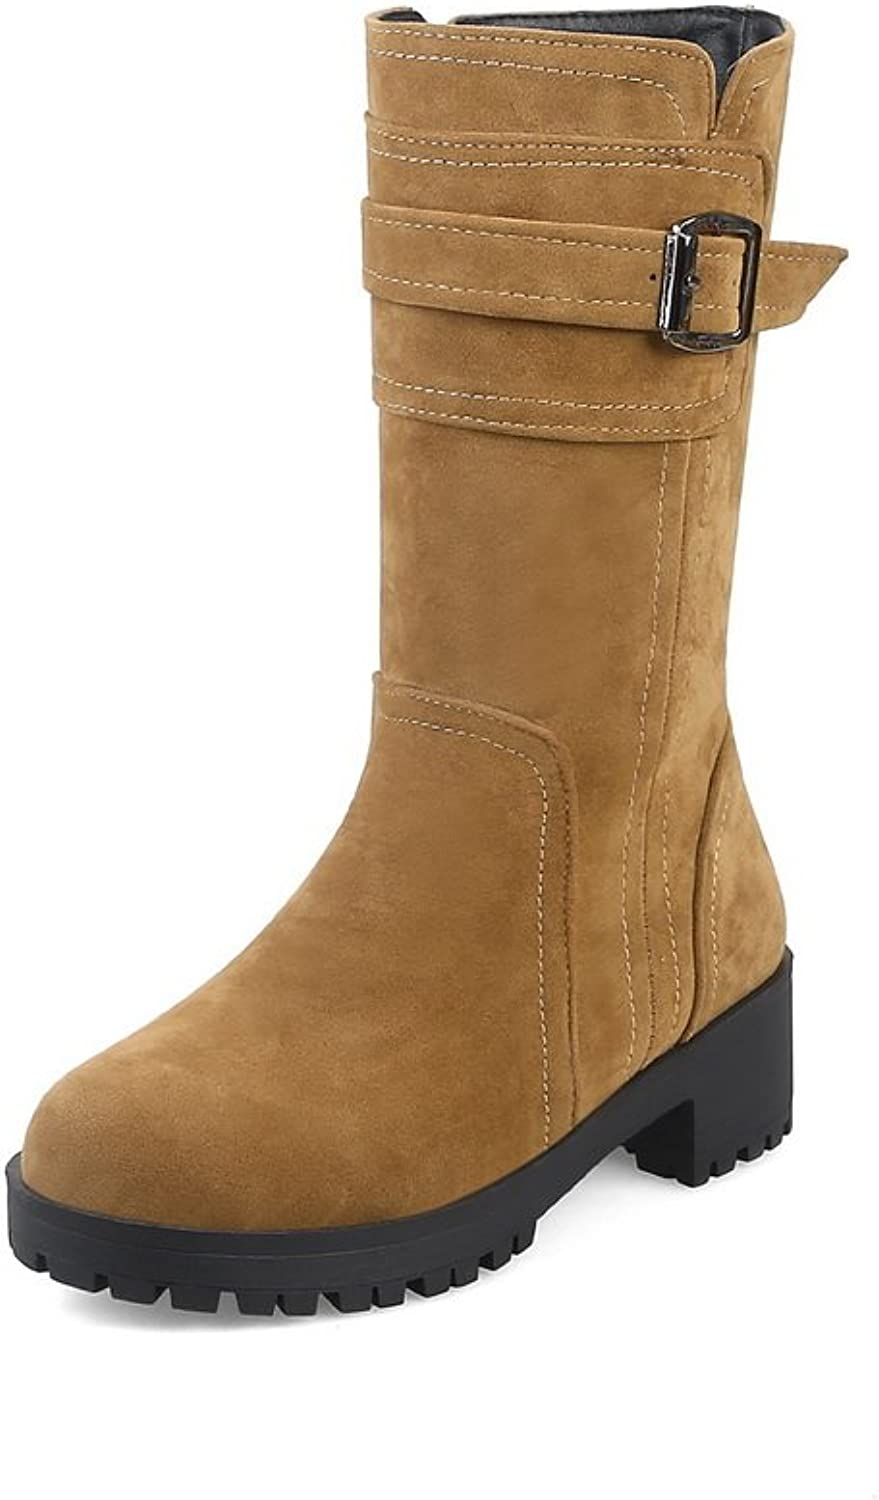 1TO9 Womens Boots Closed-Toe Zip Ankle-Wrap Low-Heel Warm Lining Waterproof Road Nubuck Urethane Dress Urethane Boots MNS02623